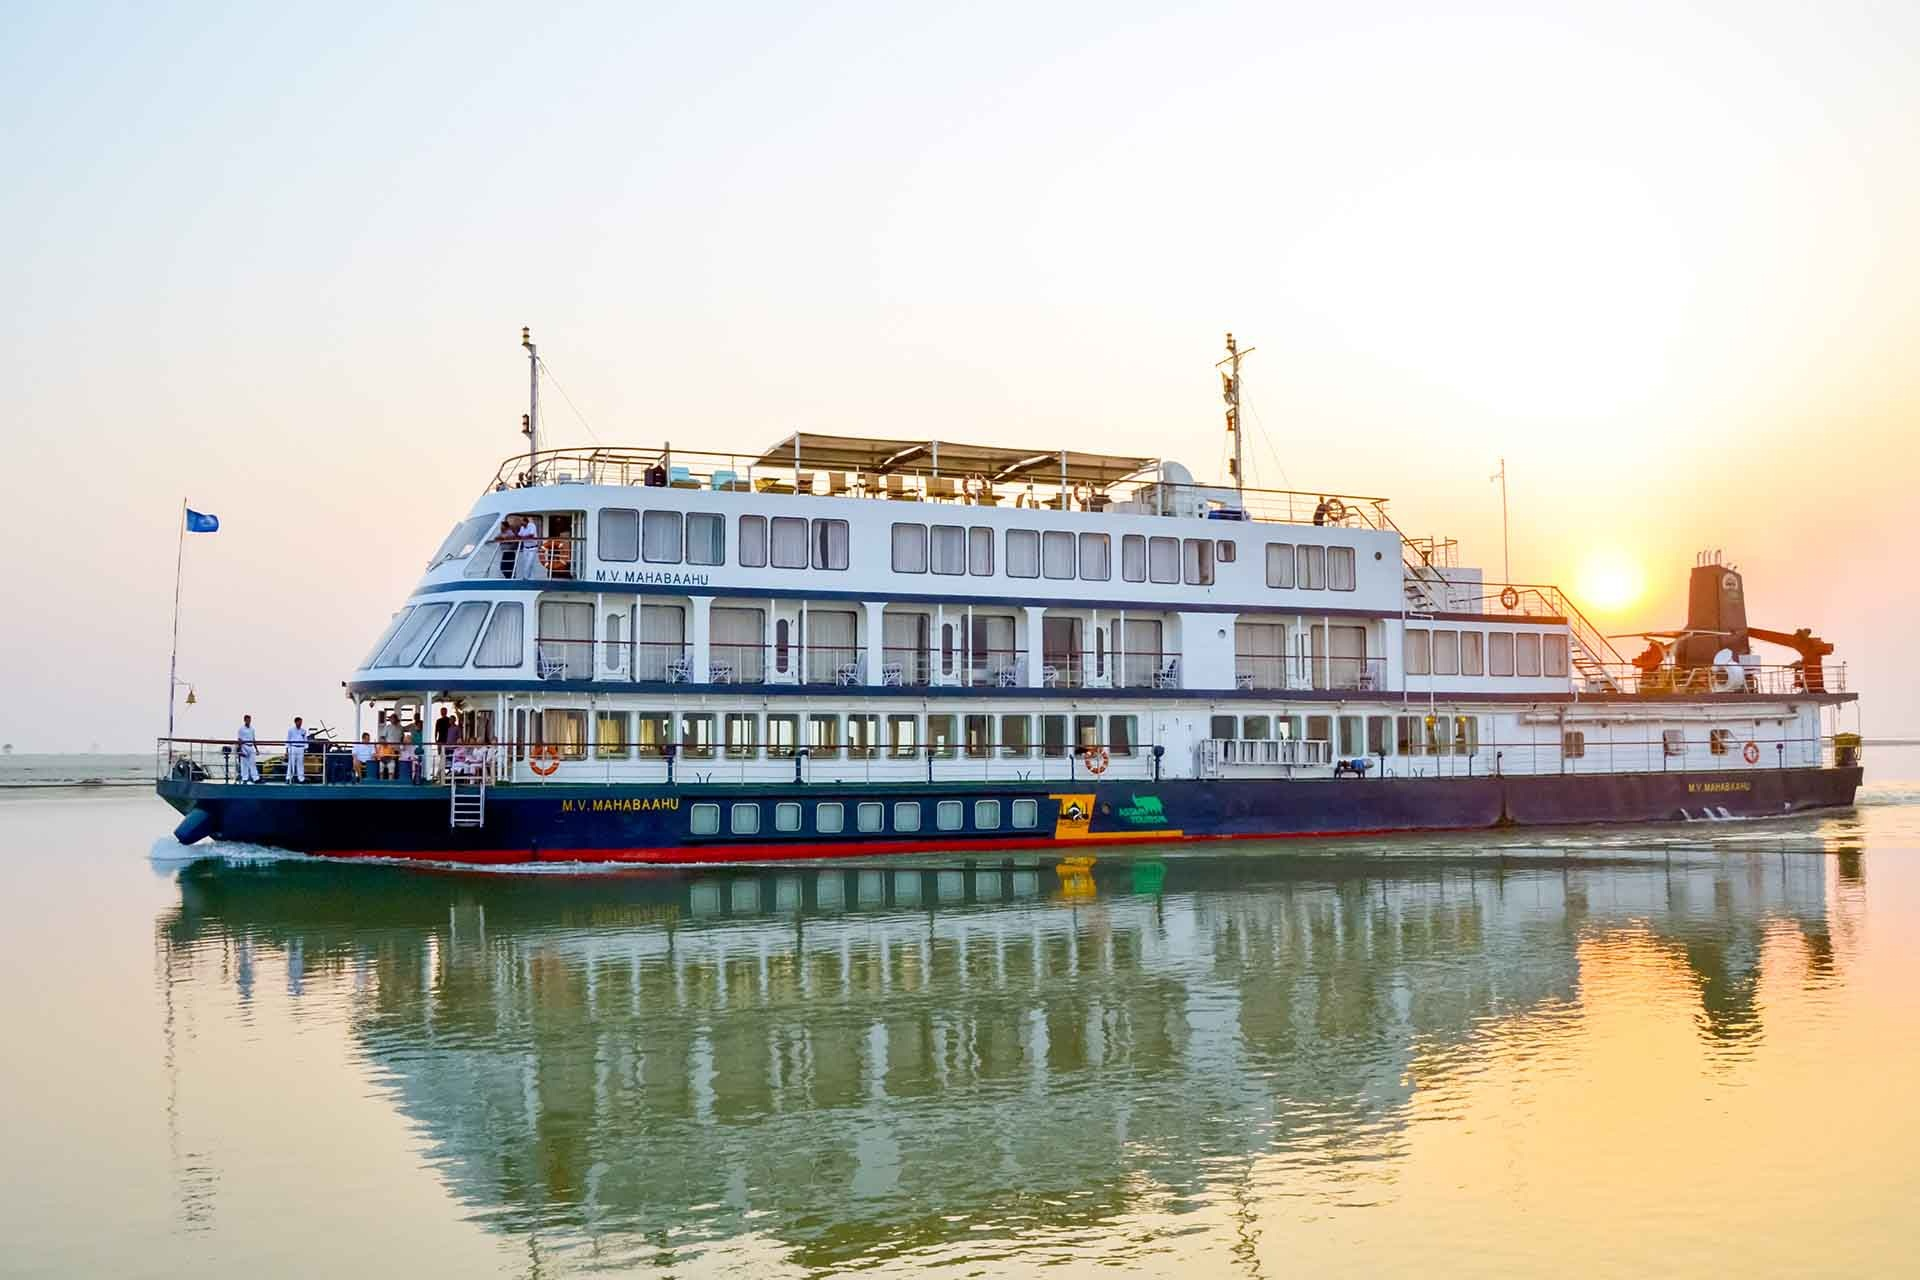 """Glimpses of North West India - The Brahmaputra, which flows through China, India and Bangladesh, truly deserves the accolade """"unique"""". Take a trip from Kolkata aboard MV Mahabaahu. The adventurous trip includes visits to remote villages and temples, to Peacock Island where you can search for golden langur monkeys, and to Kaziranga National Park, home to rhinoceros, Asian elephants and tigers."""